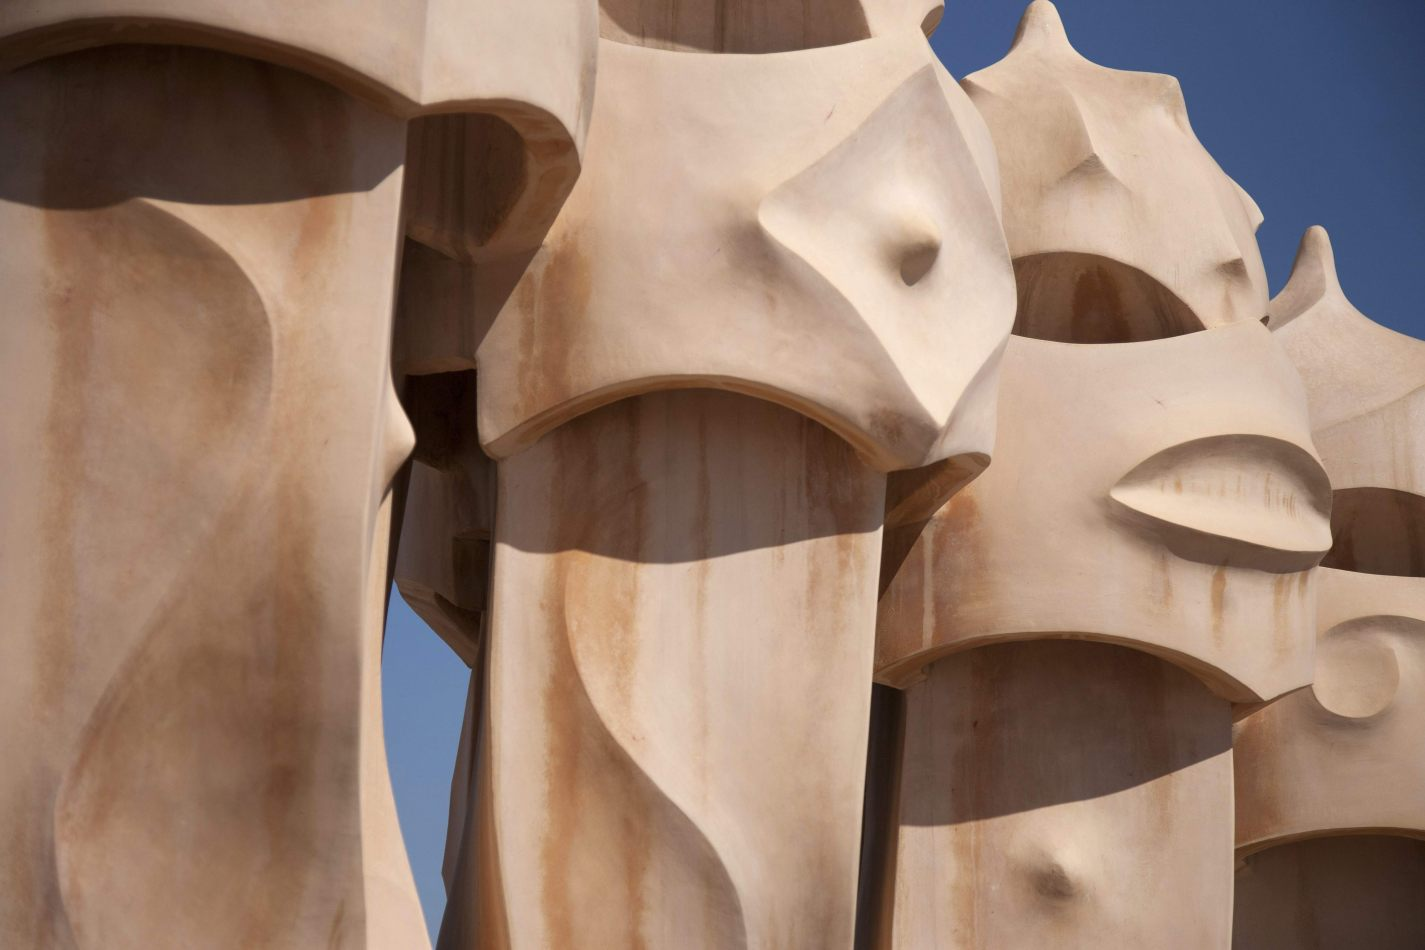 Anthony Ellis Photography: Around the Edges - Where Chimneys Have Faces